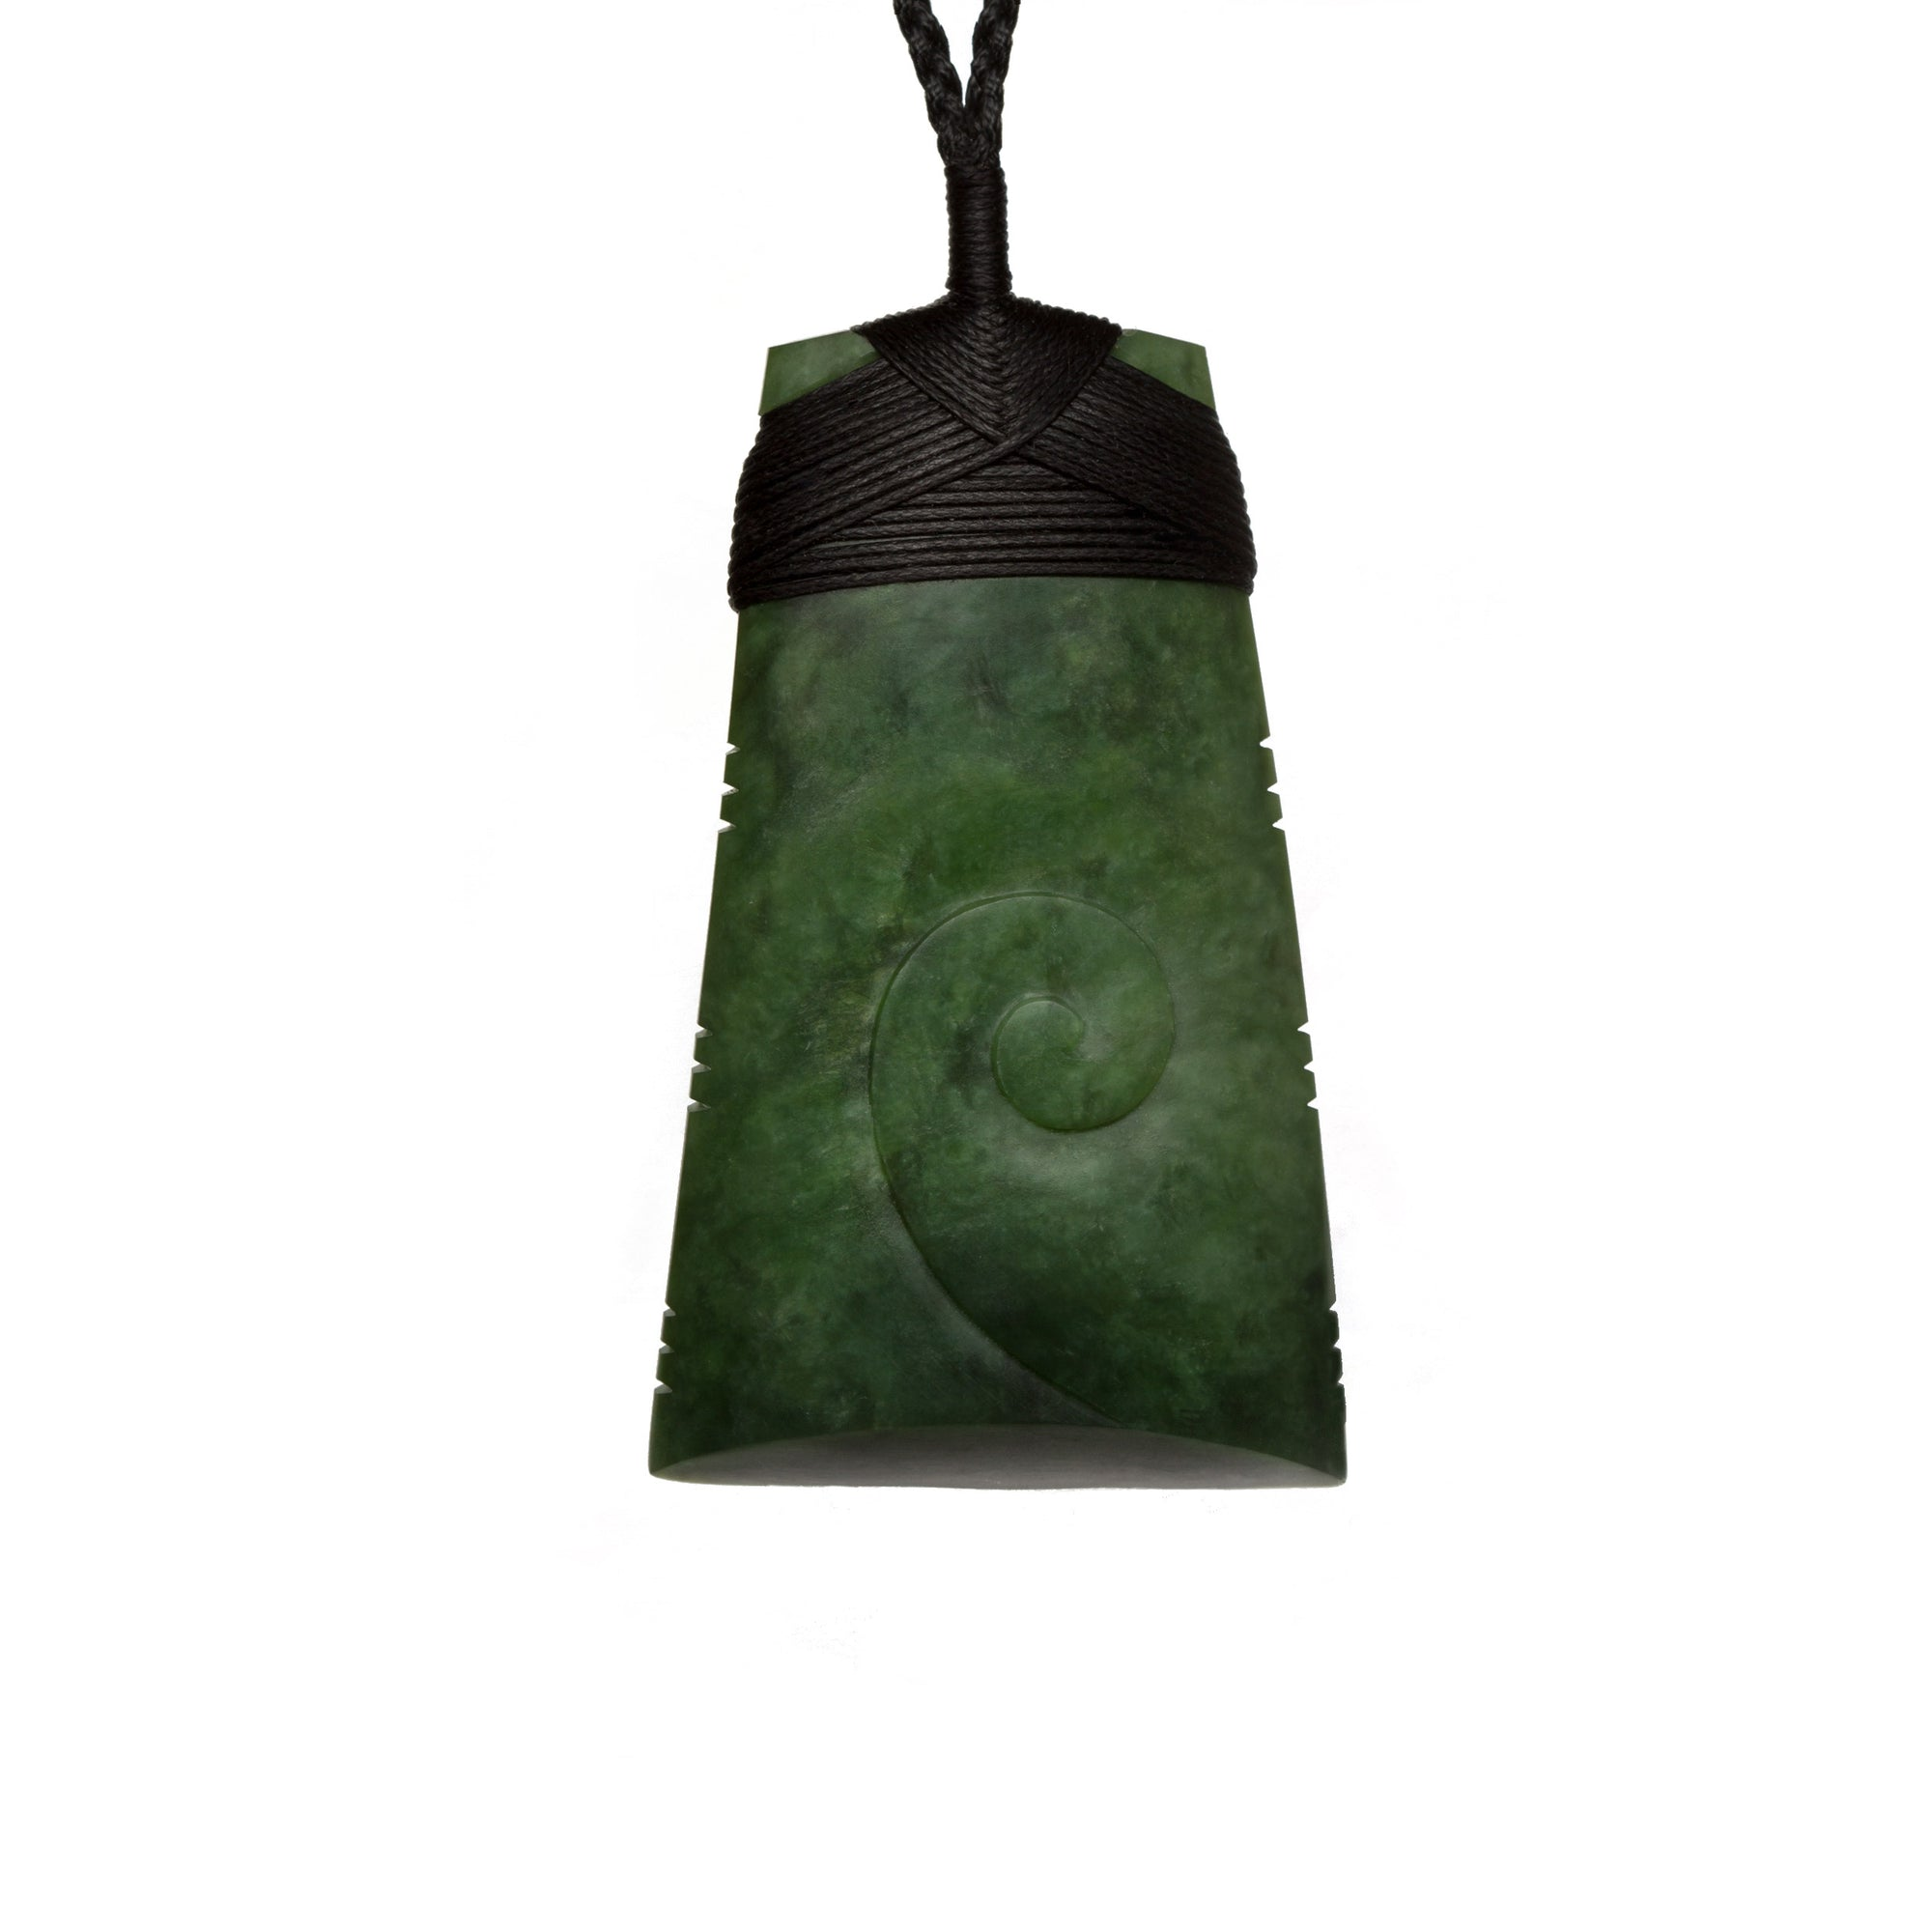 New Zealand Pounamu Toki with Koru Inlay